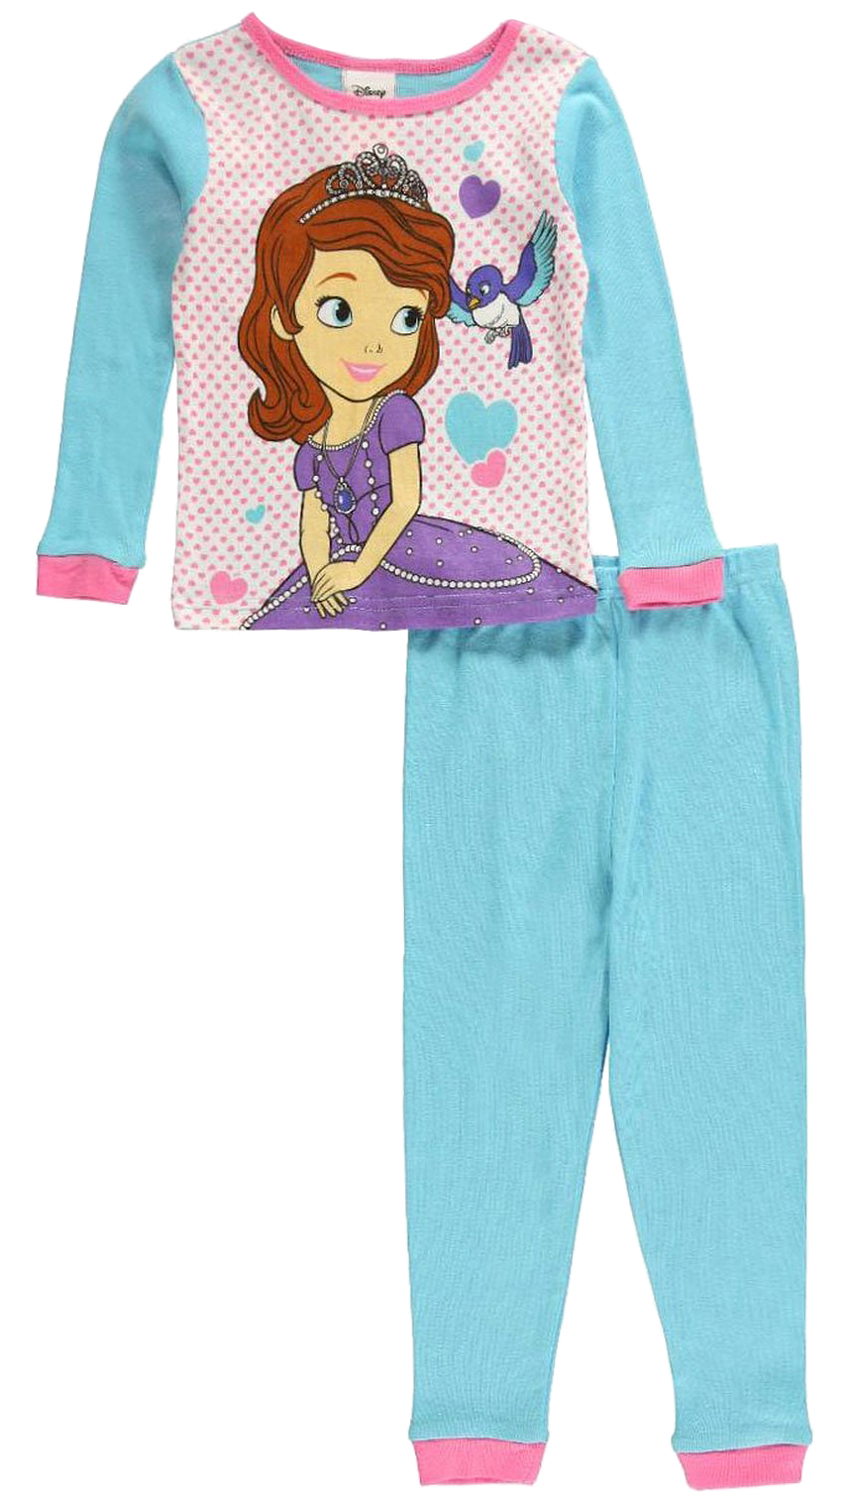 Disney Little Girls' 2 Piece Sofia the First Princess Knit Pajama Set at Sears.com